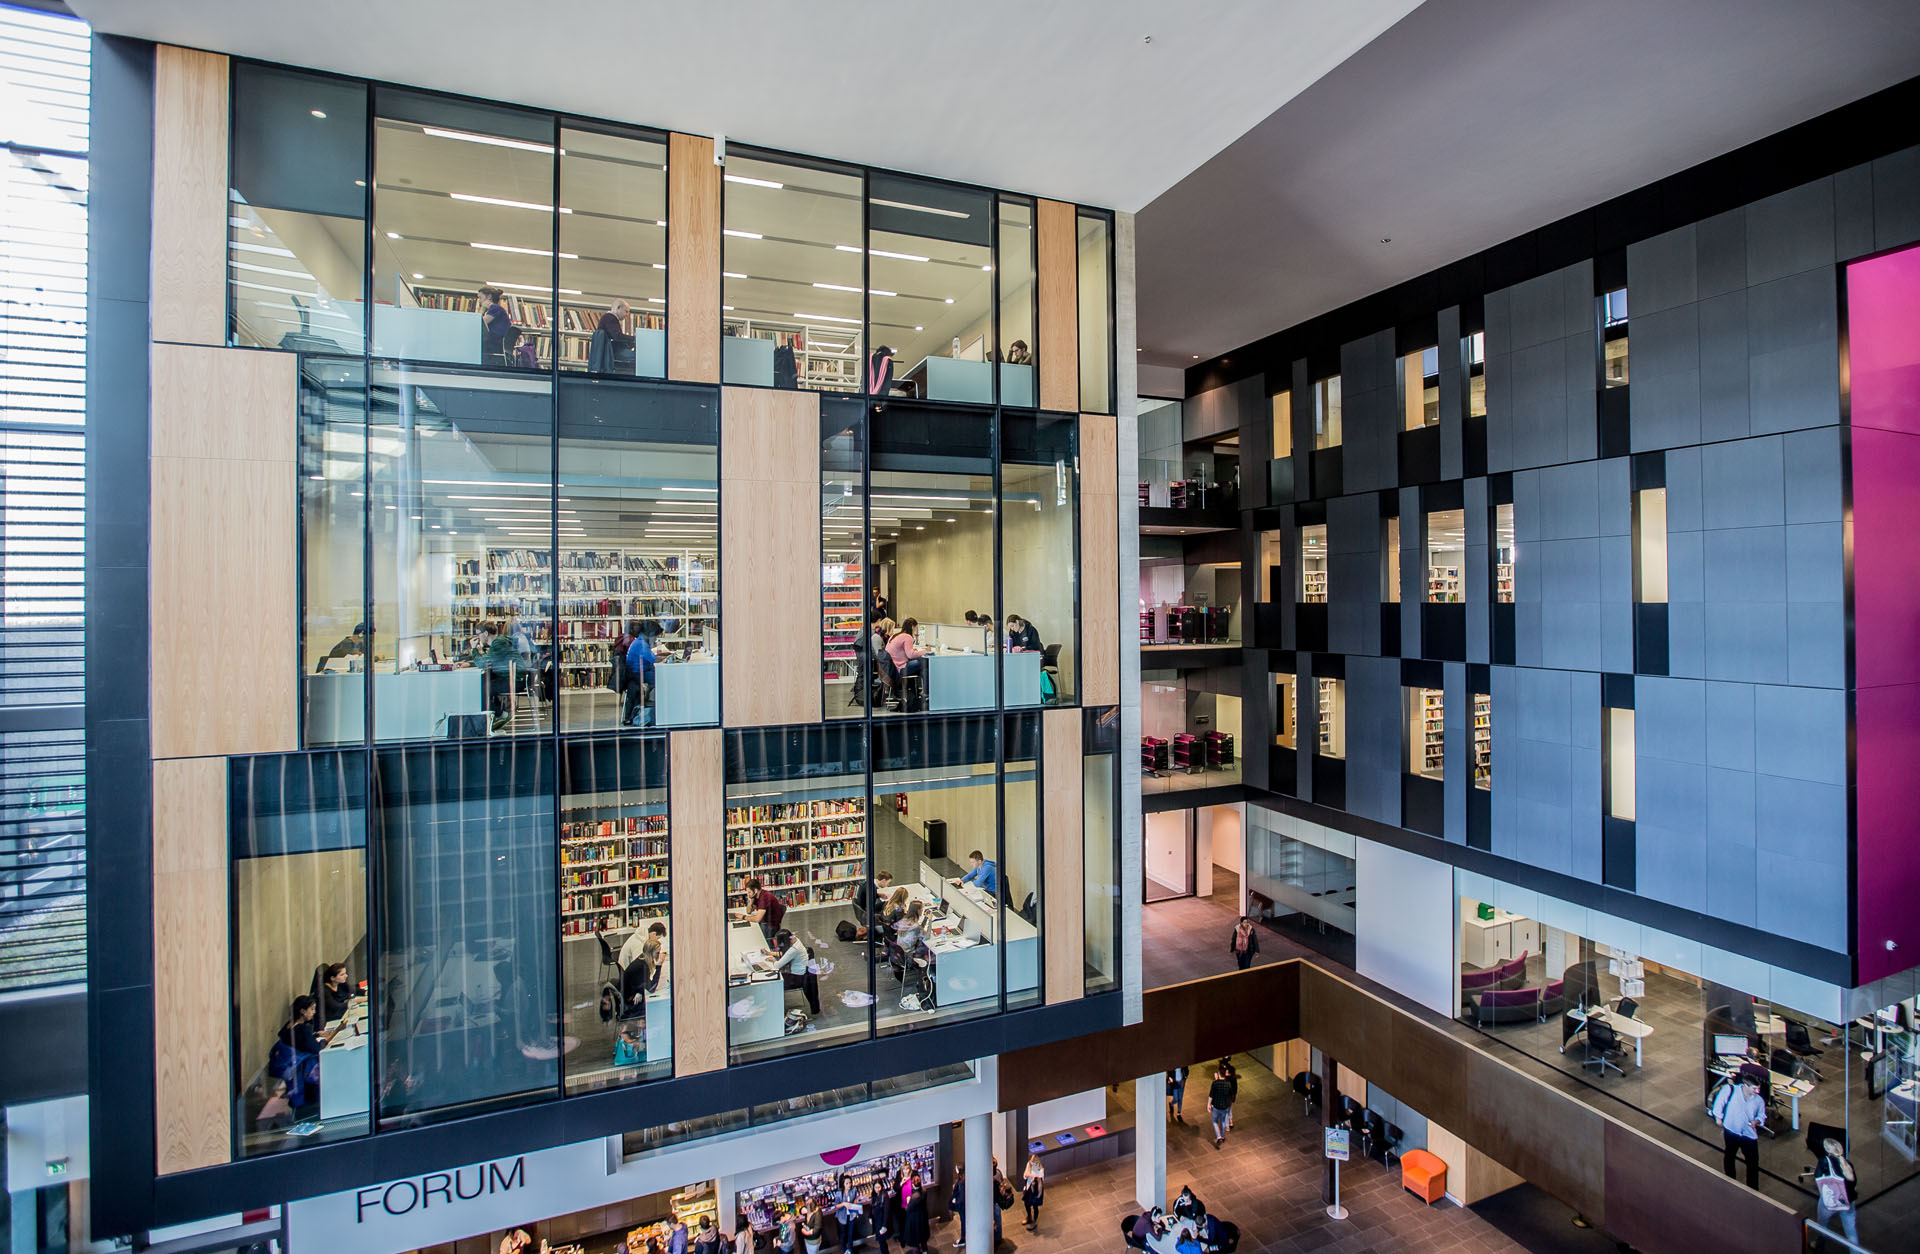 Headington Library Oxford Brookes University library building architecture design interior view